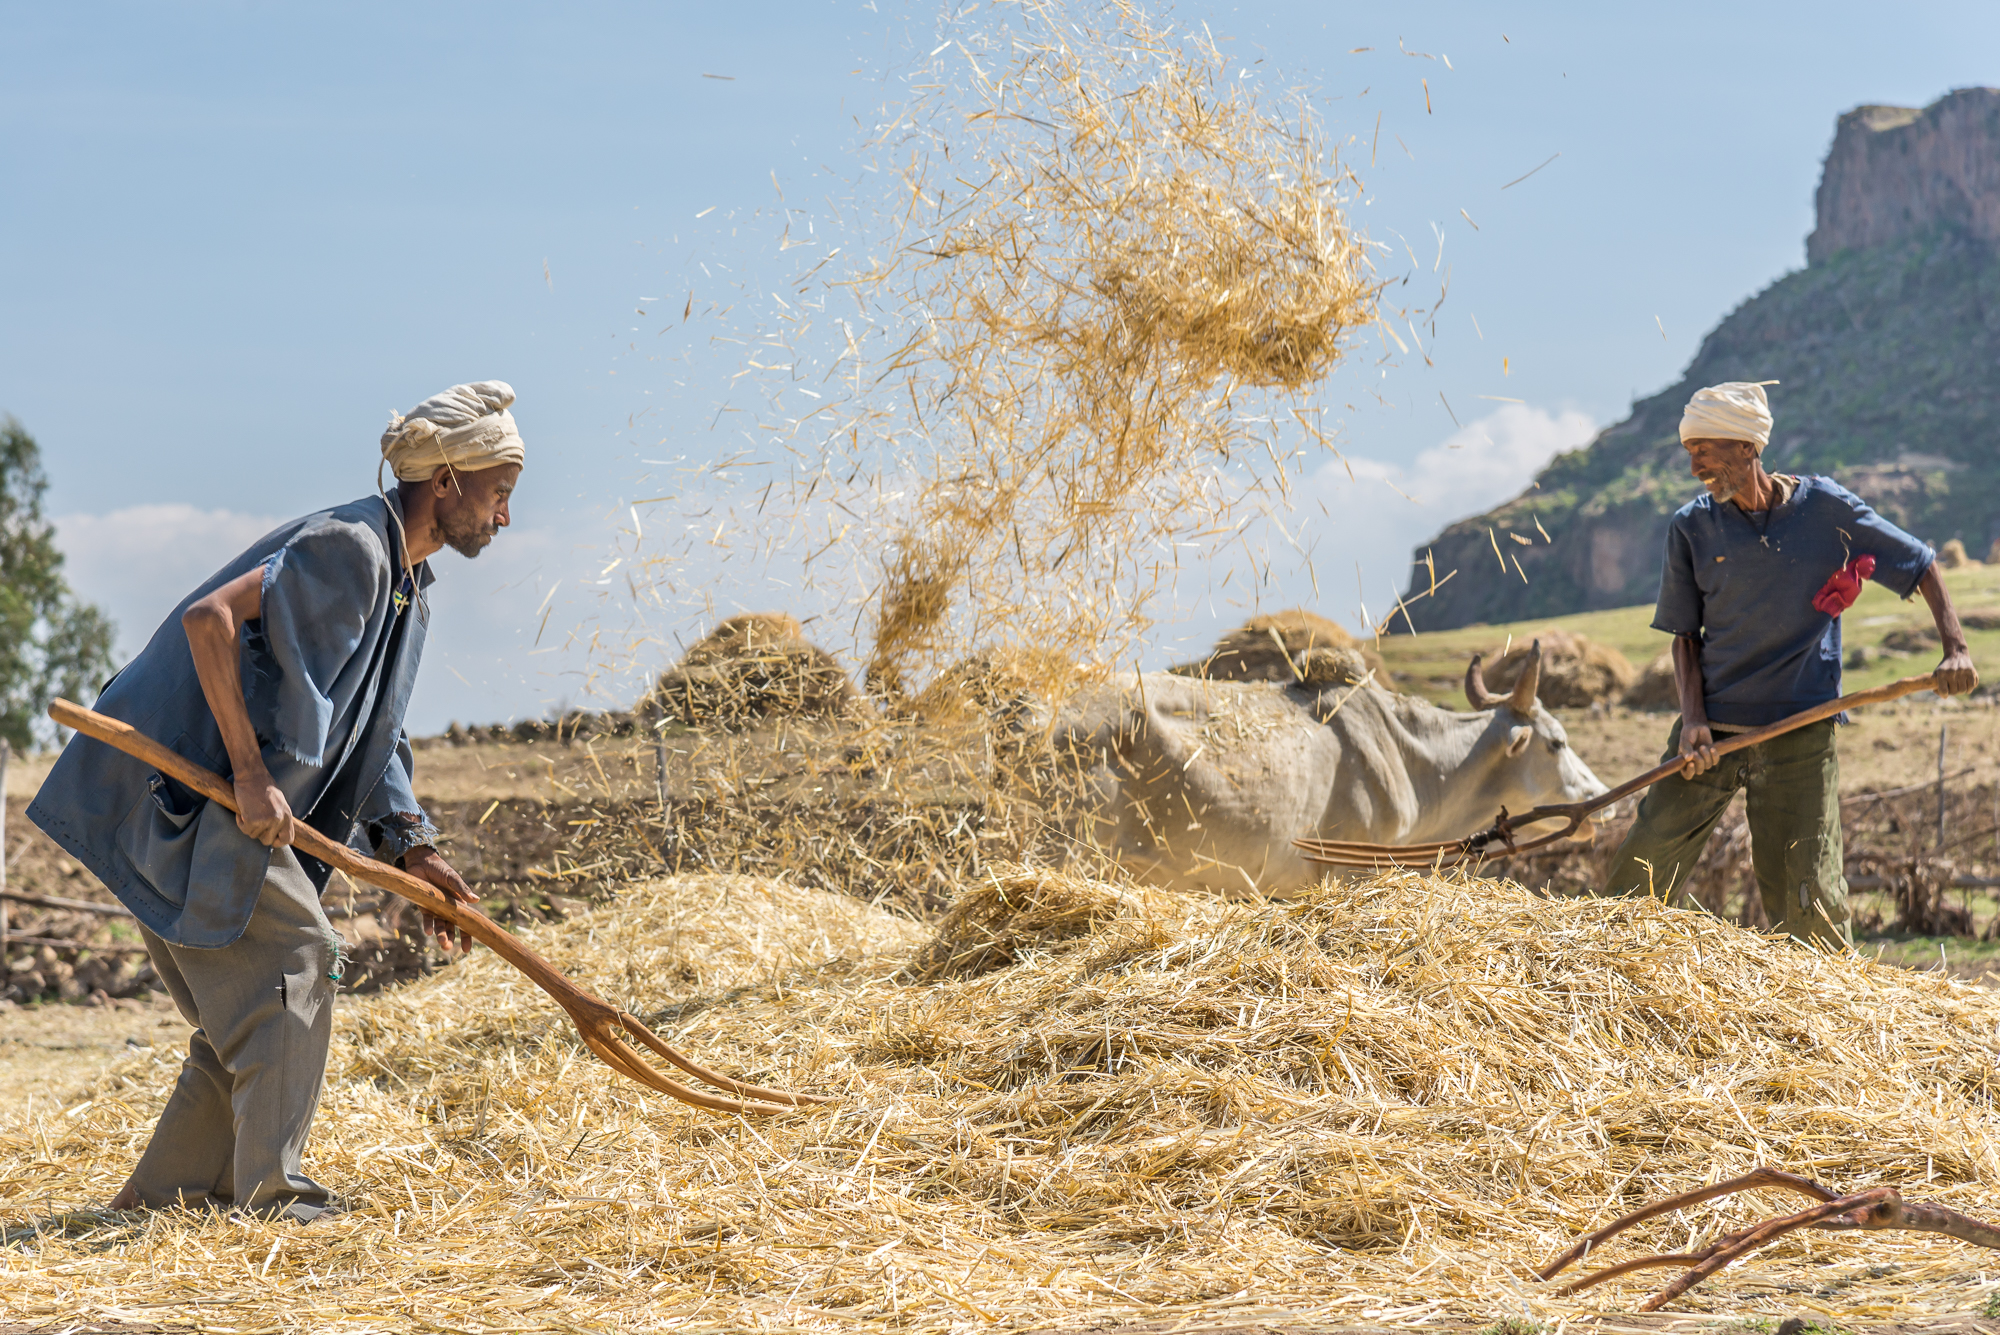 ethiopia, farming in the highlands